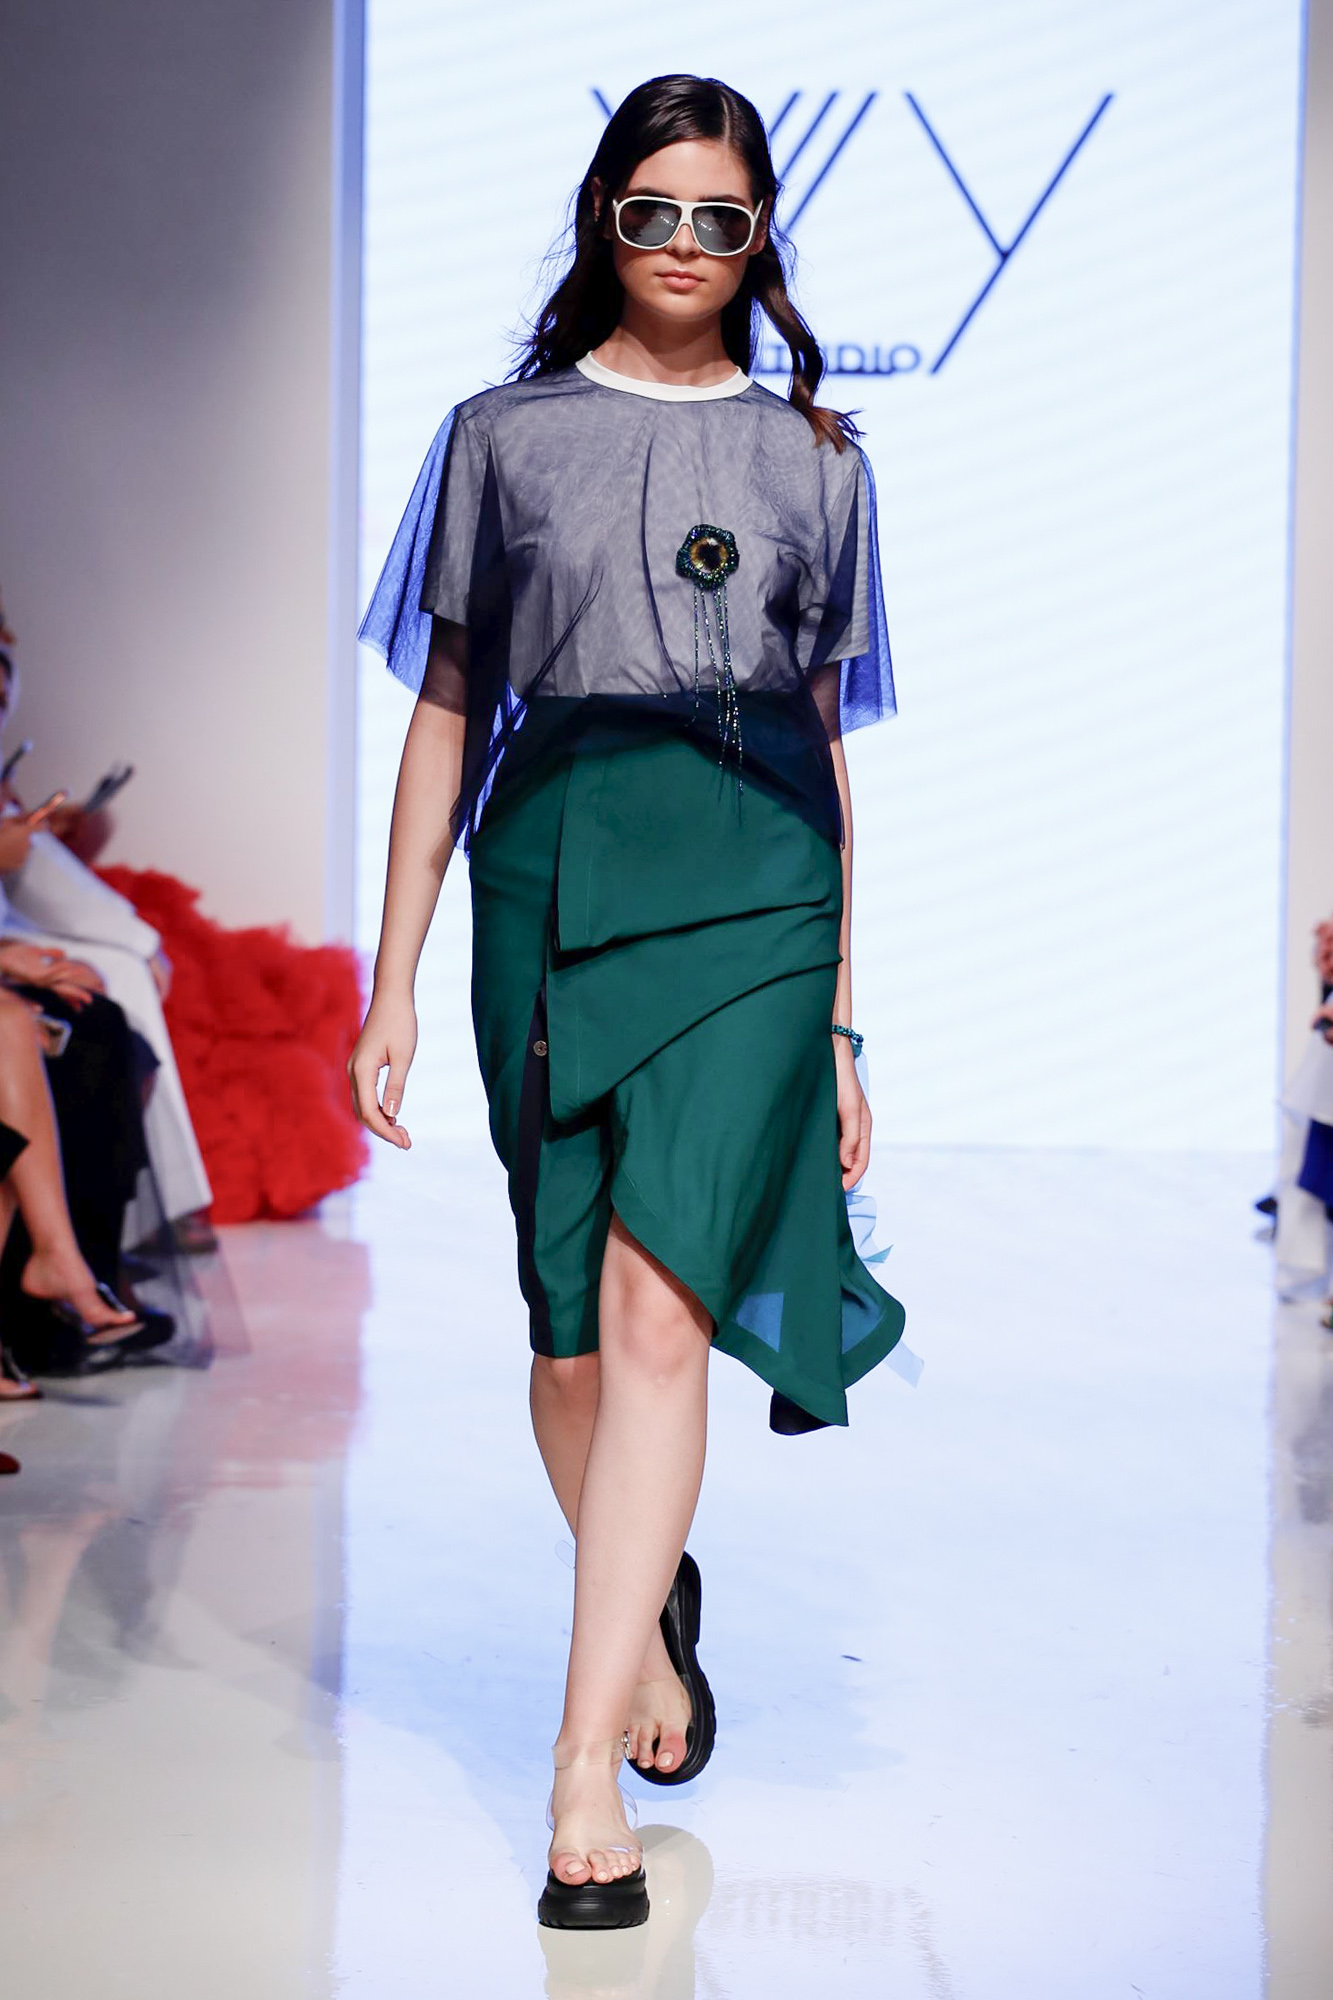 YLY-Studio-Arab-Fashion-Week-SS20-Dubai-5786